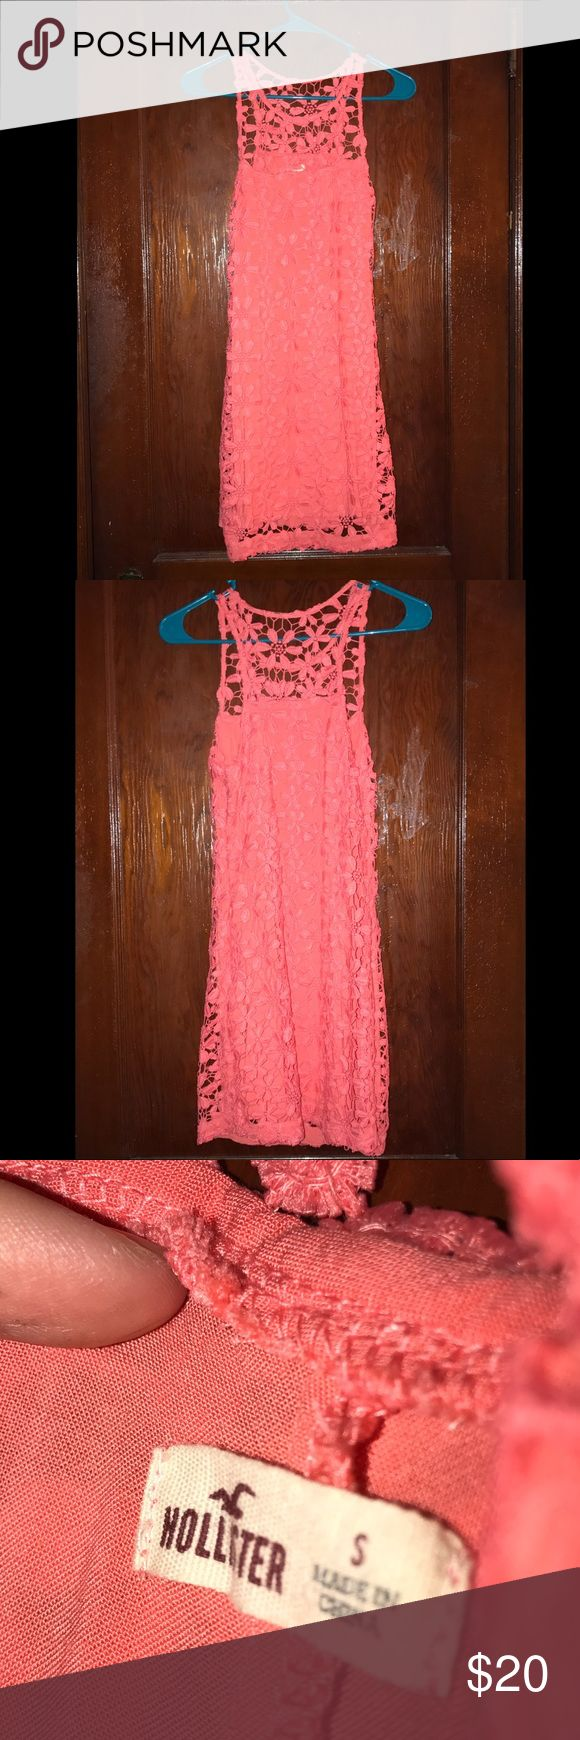 Coral Floral Lace Hollister Dress Selling my color Lace Hollister dress! I only wore this once to a party and doesn't fit me anymore so figured I'd put it up on here! It's a perfect dress for a summer event or a girls night out! Pair it with a pair of gold flats and you'll be golden! Offers accepted!! ☺️ Pictures are stock pics of what it looks like on! Hollister Dresses Mini